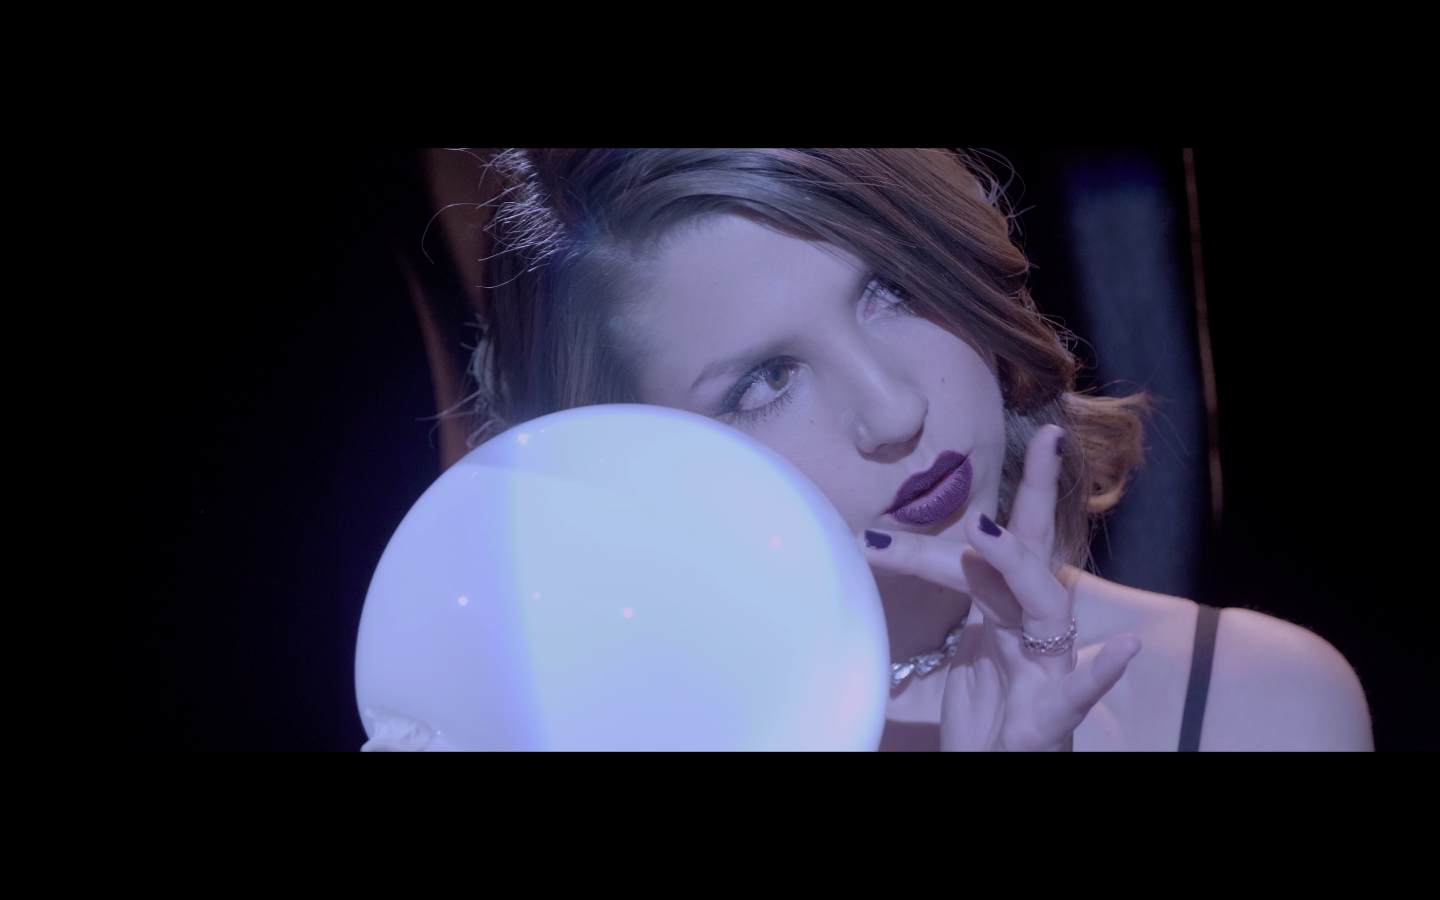 """PREMIERE: Jess Weimer shares her light in """"Glass Tower"""" video"""